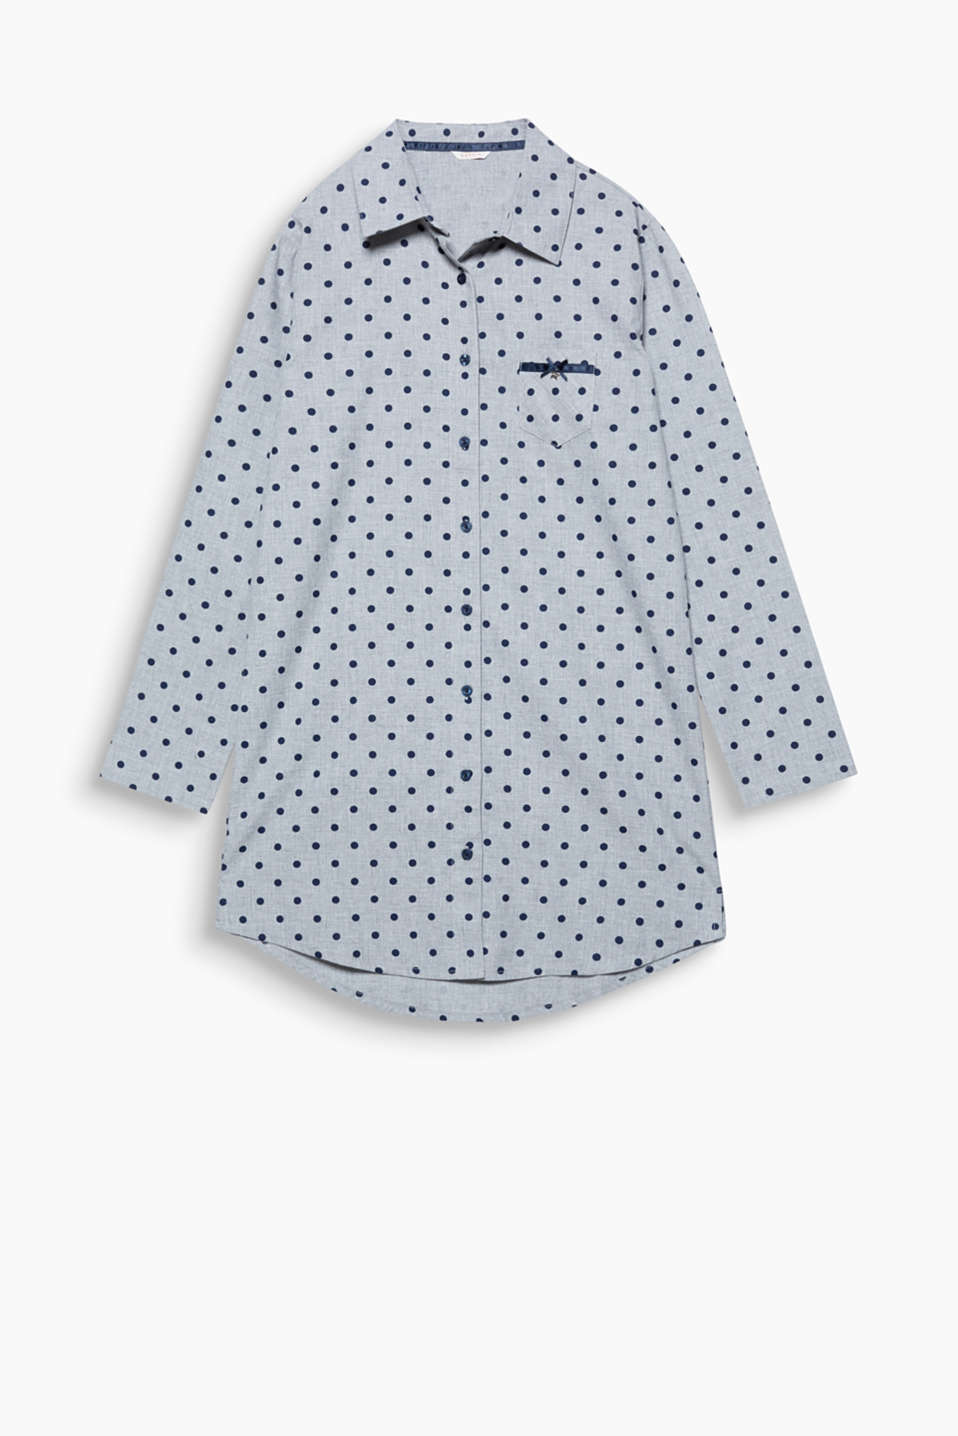 Retro polka dots are just as beguiling by night: nightshirt with a breast pocket and satin detailing